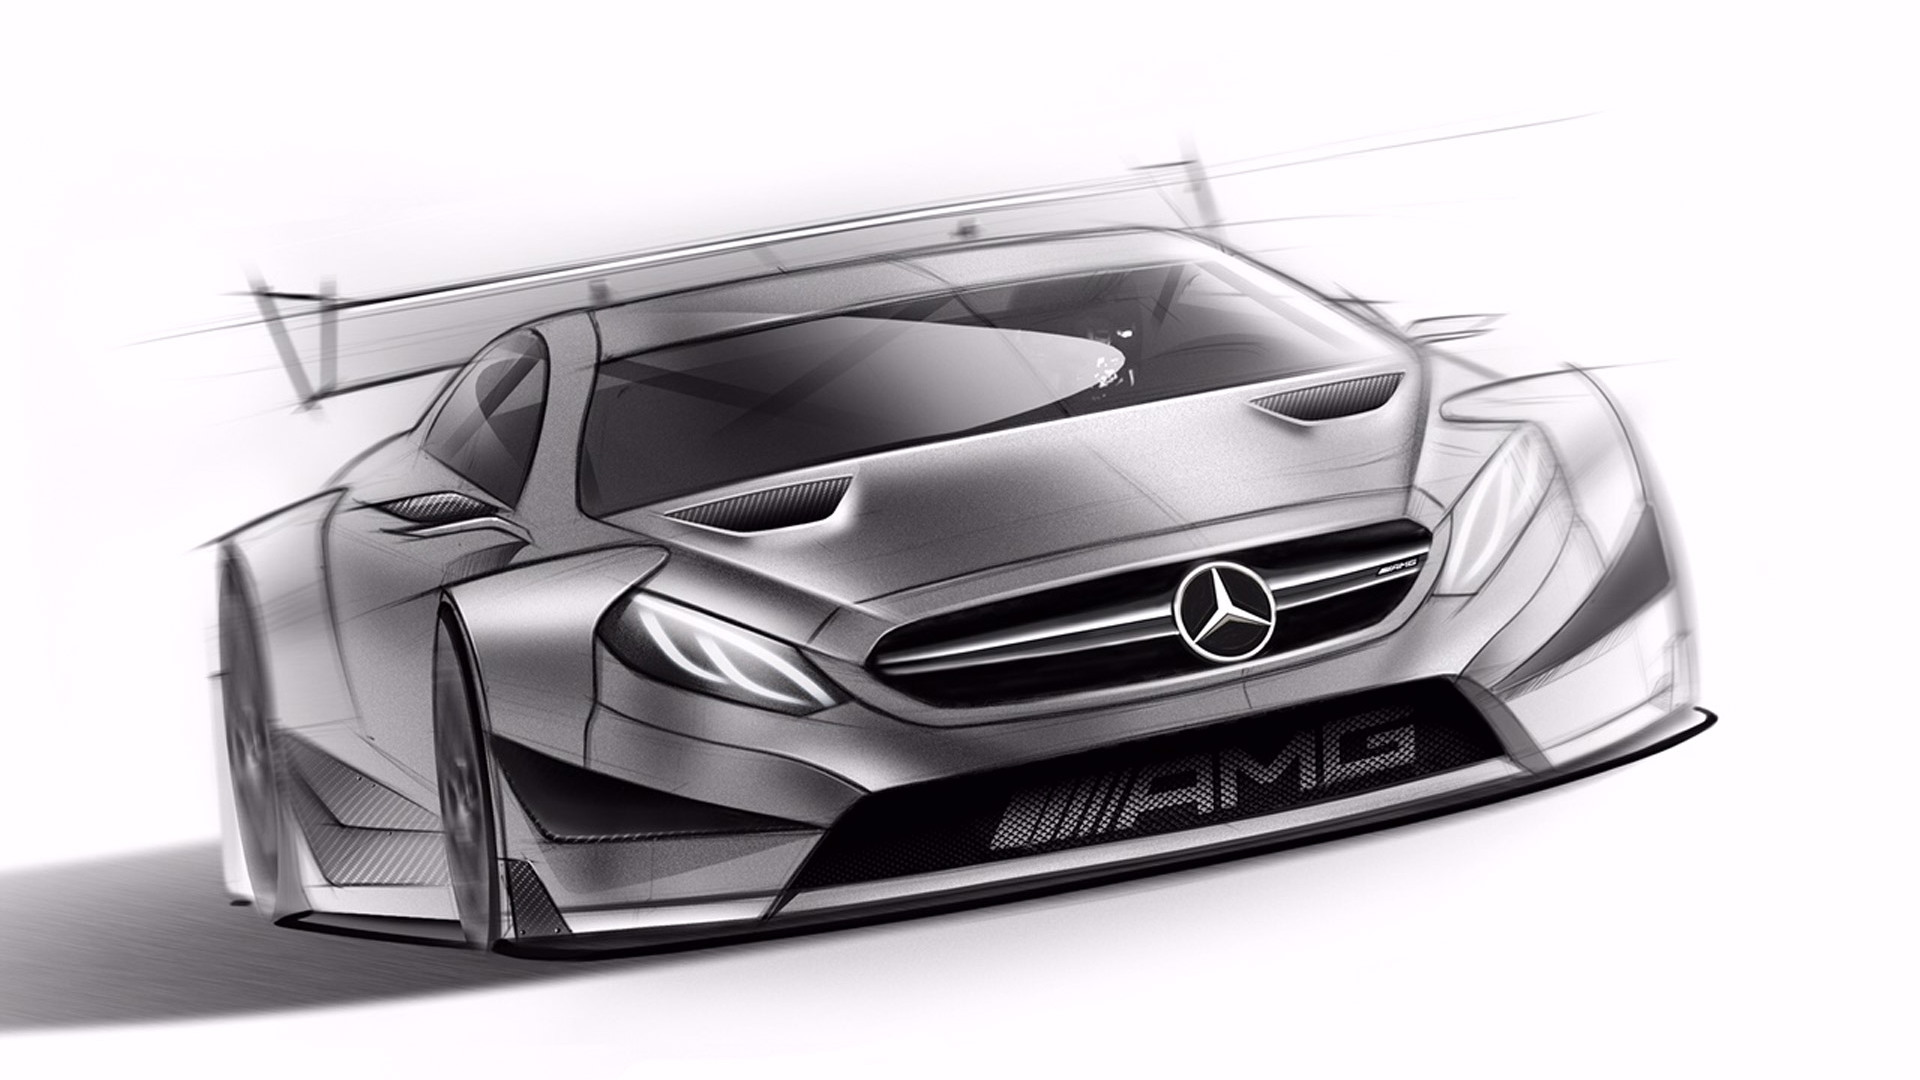 Teaser for 2016 Mercedes-AMG C63 DTM race car